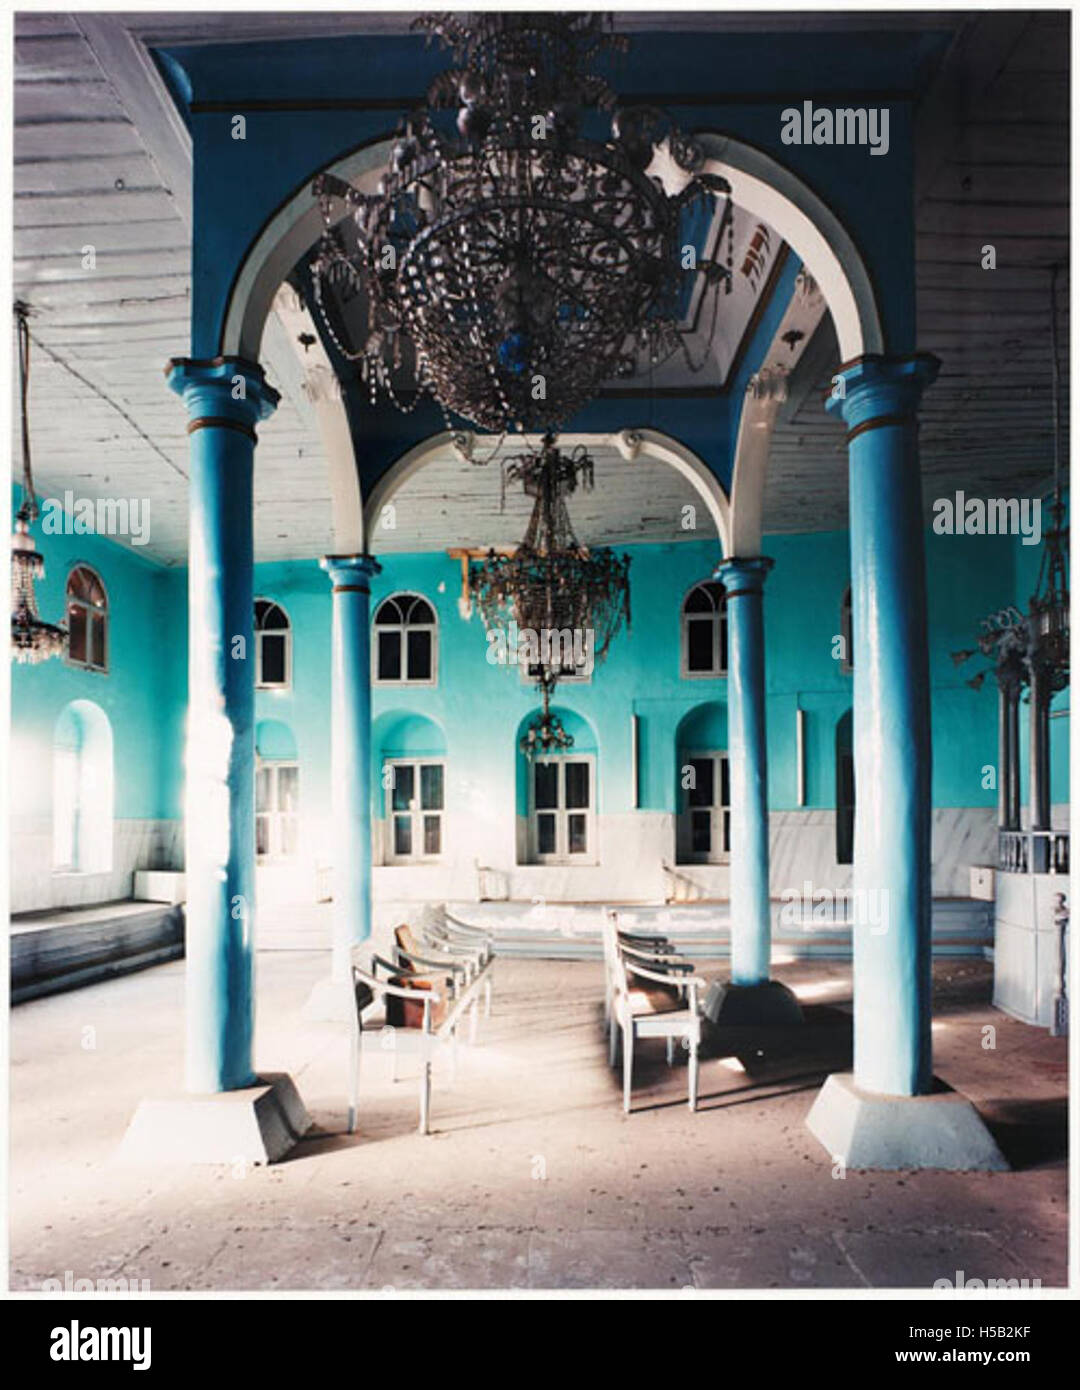 Izmir Synagogue High Resolution Stock Photography And Images Alamy